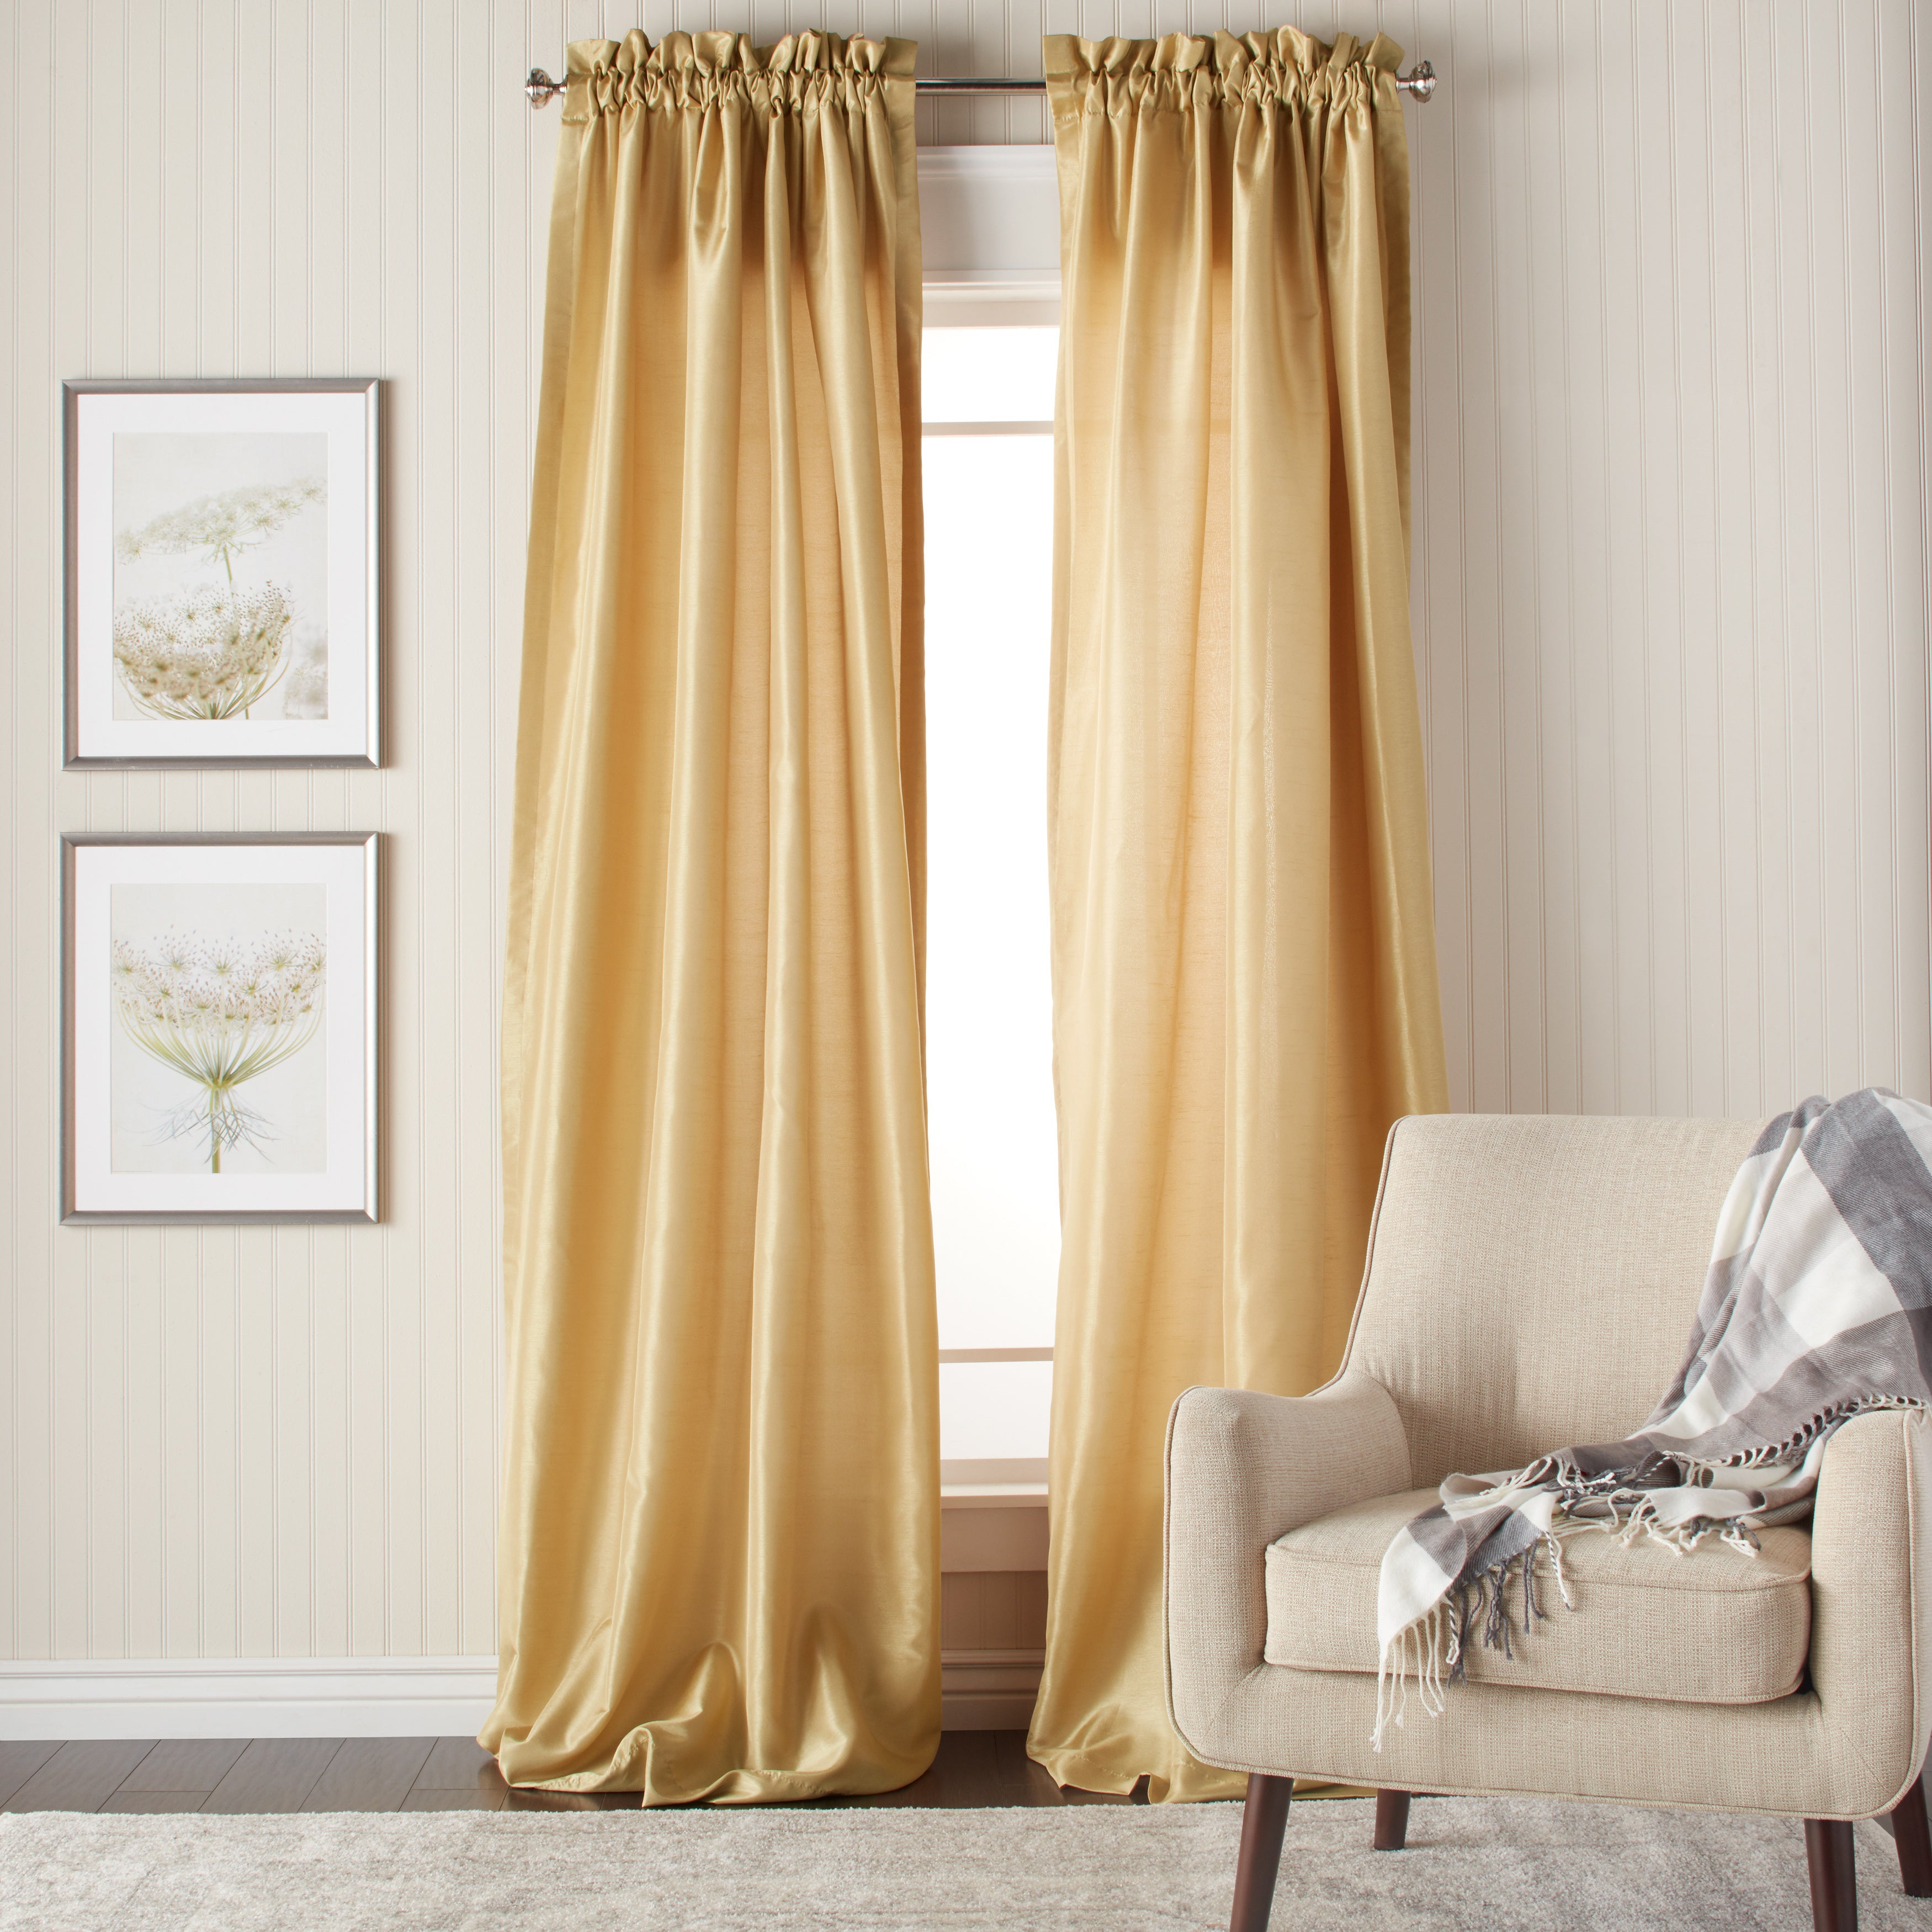 piedmont rod inch how panel image style southern drapery curtain one curtains goodwill to ways six